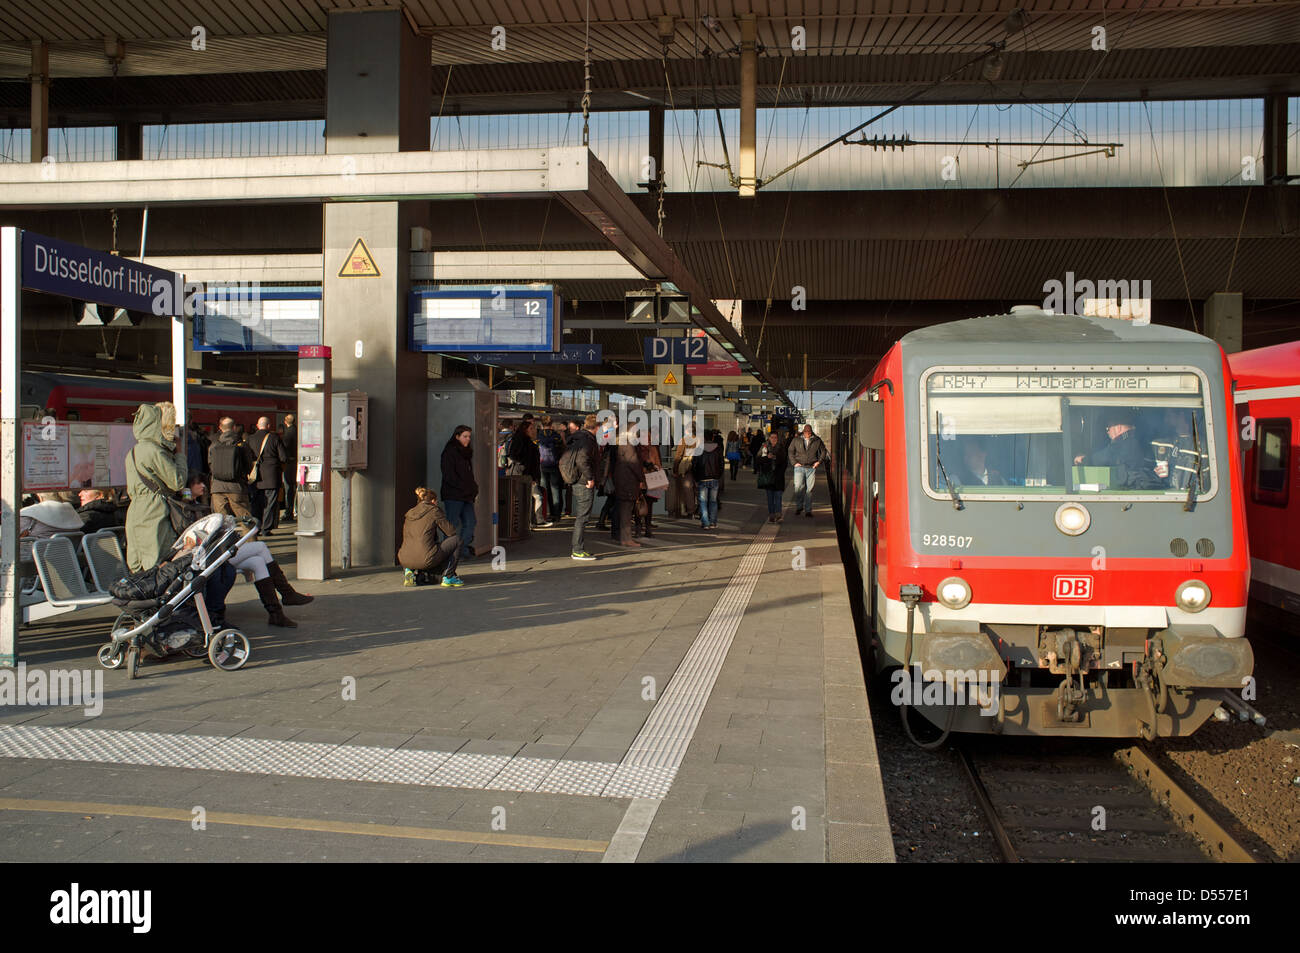 Local passenger train (RB47 Regional-Bahn) to Wuppertal, Dusseldorf HBF station Germany Stock Photo